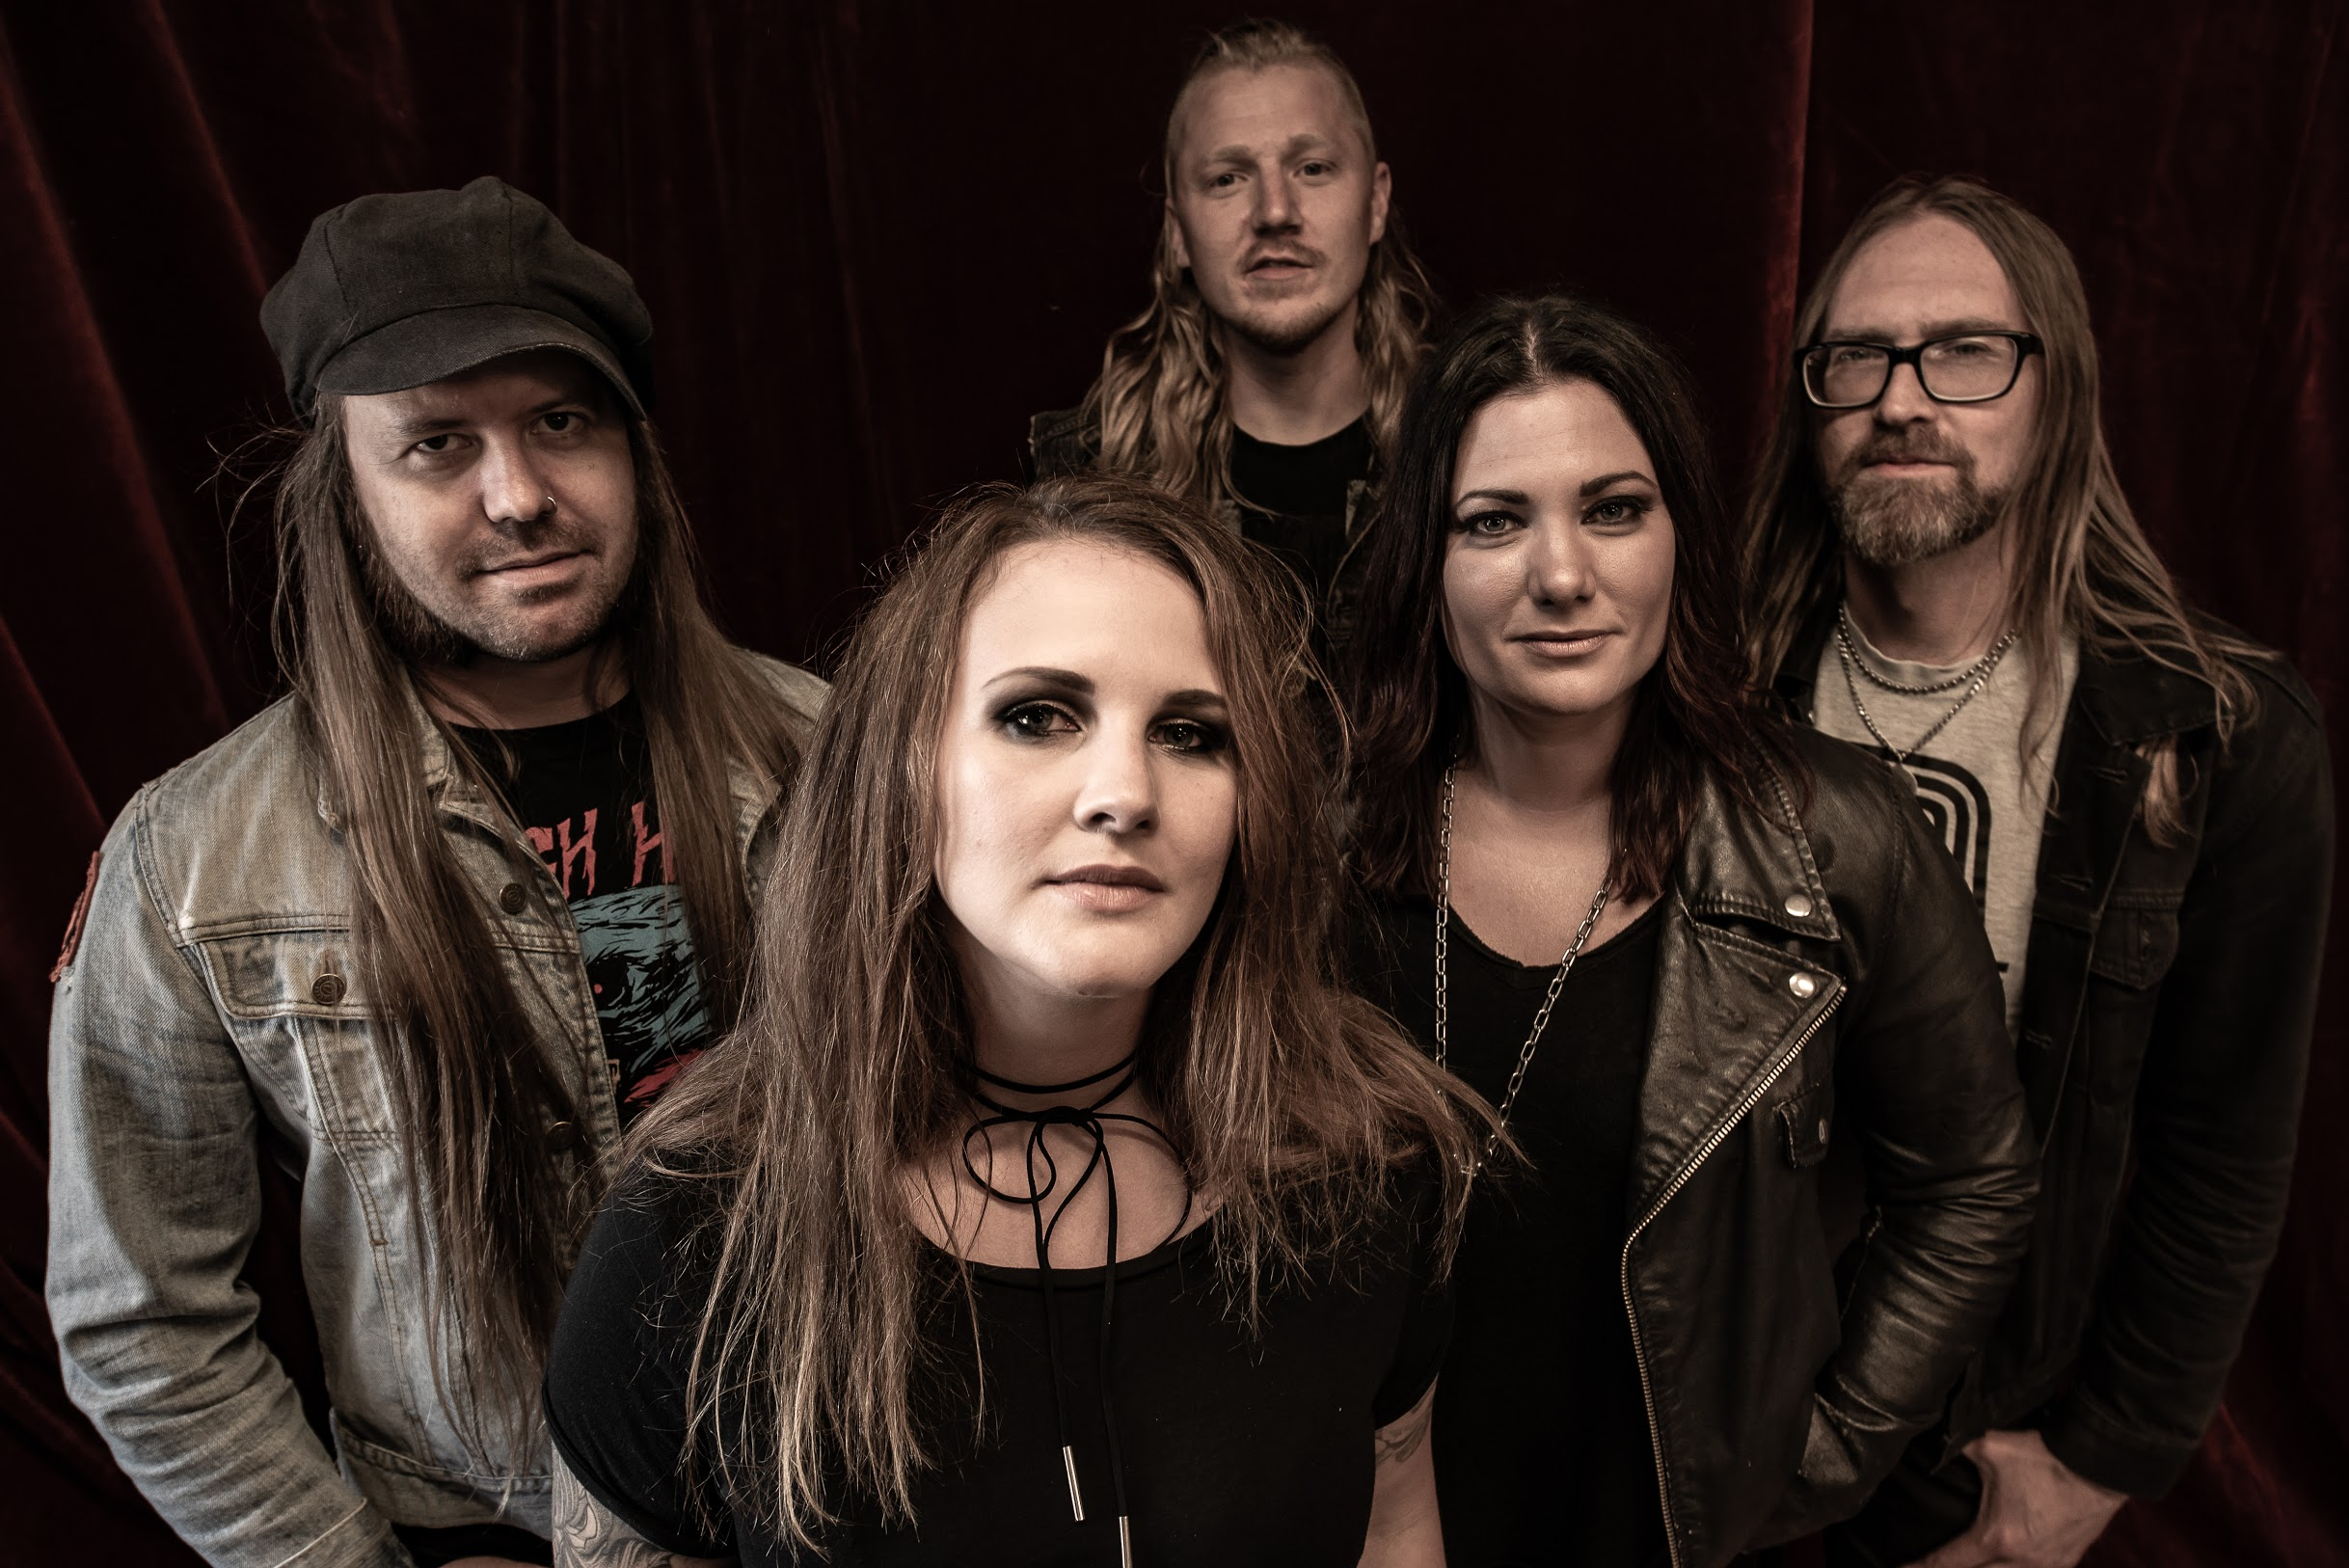 ELECTRIC HYDRA: Majestic Mountain Records sign Promising Swedish Quintet for Release of Debut Album